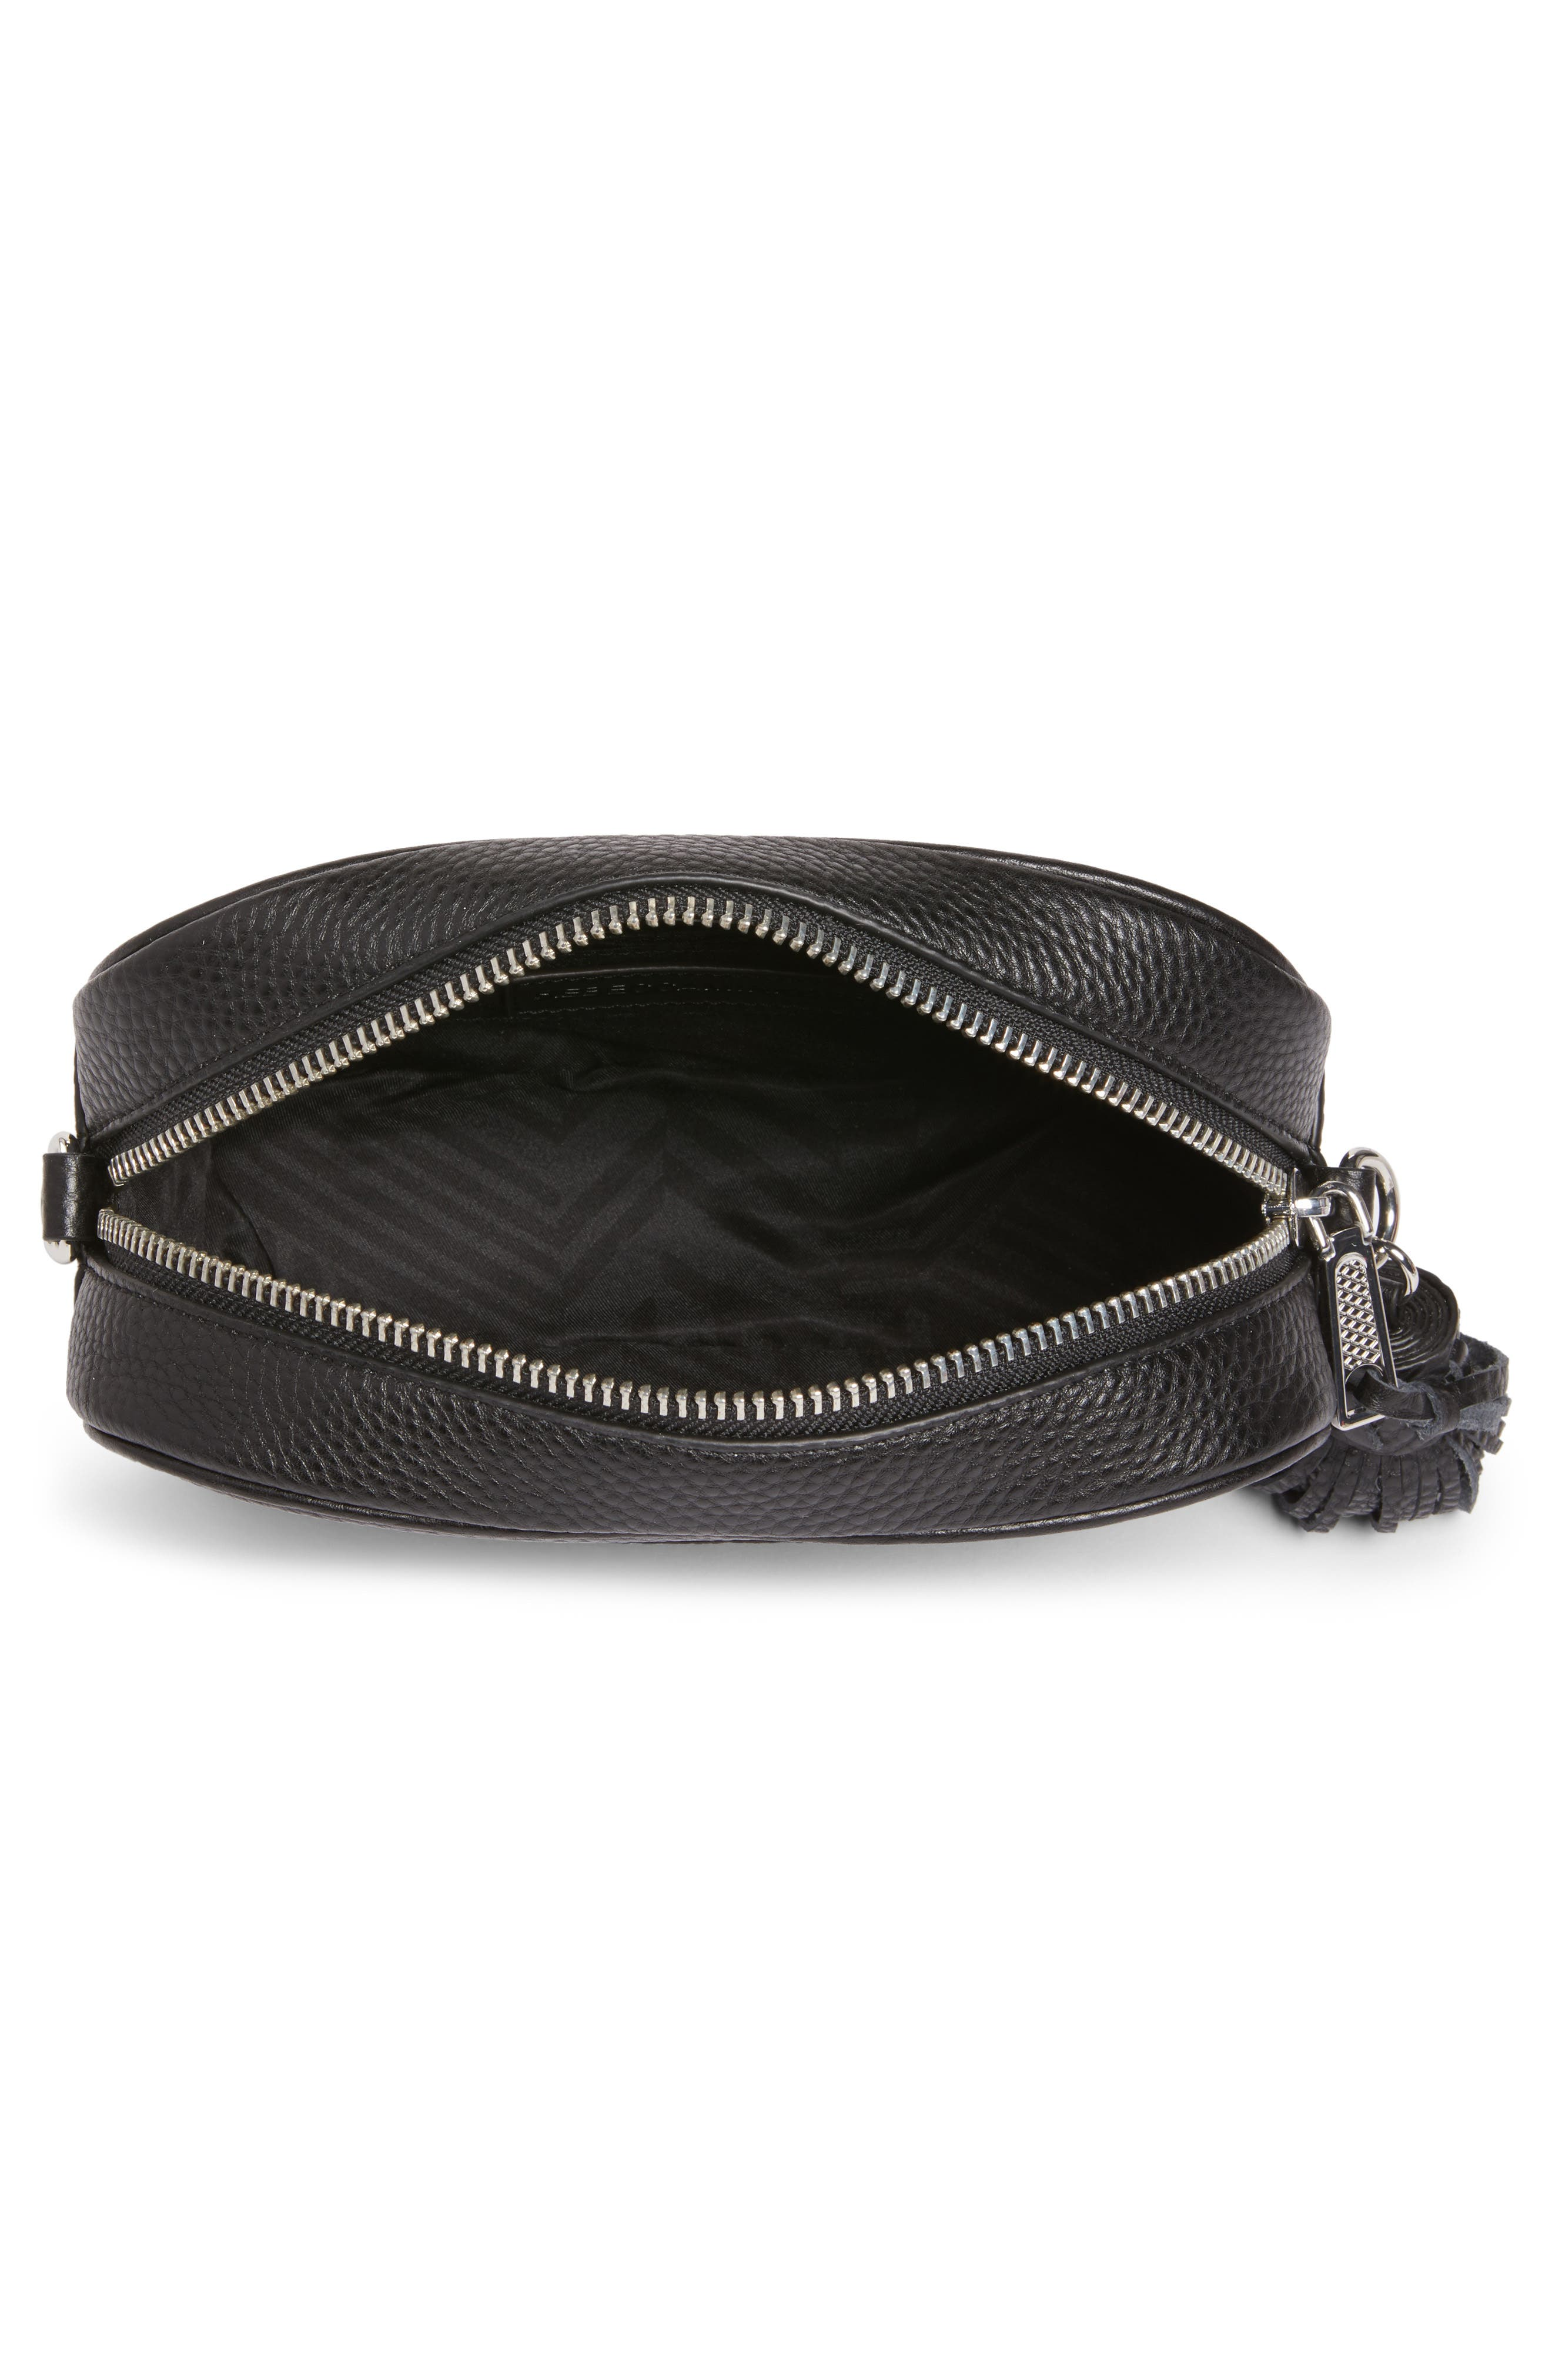 Alternate Image 4  - Rebecca Minkoff Leather Camera Bag with Guitar Strap (Nordstrom Exclusive)